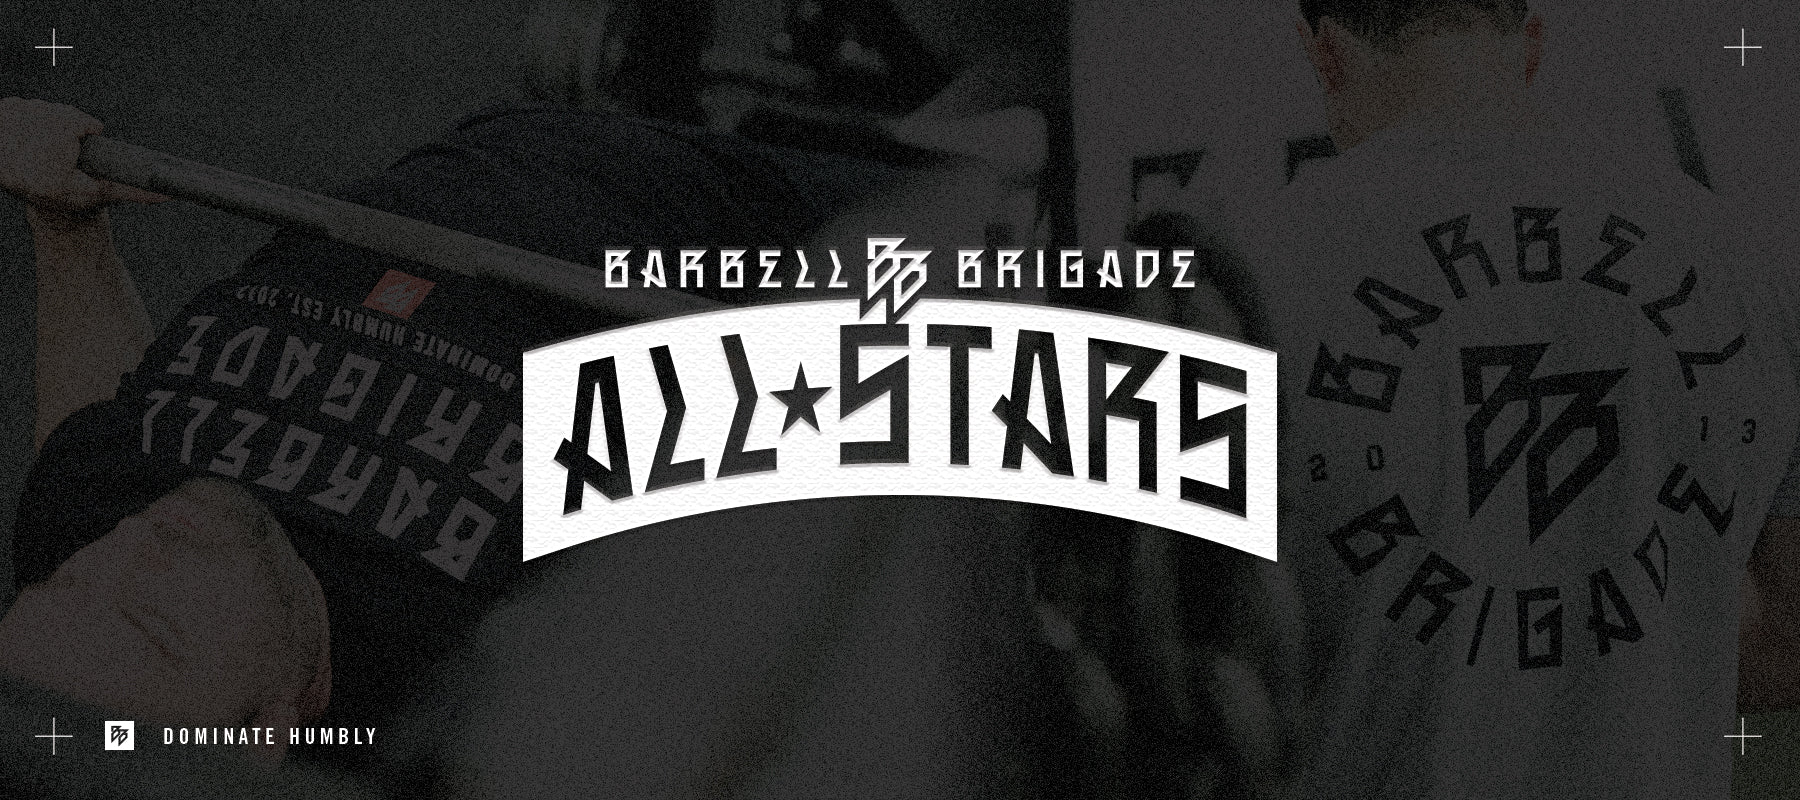 ALL STARS text in Graphic